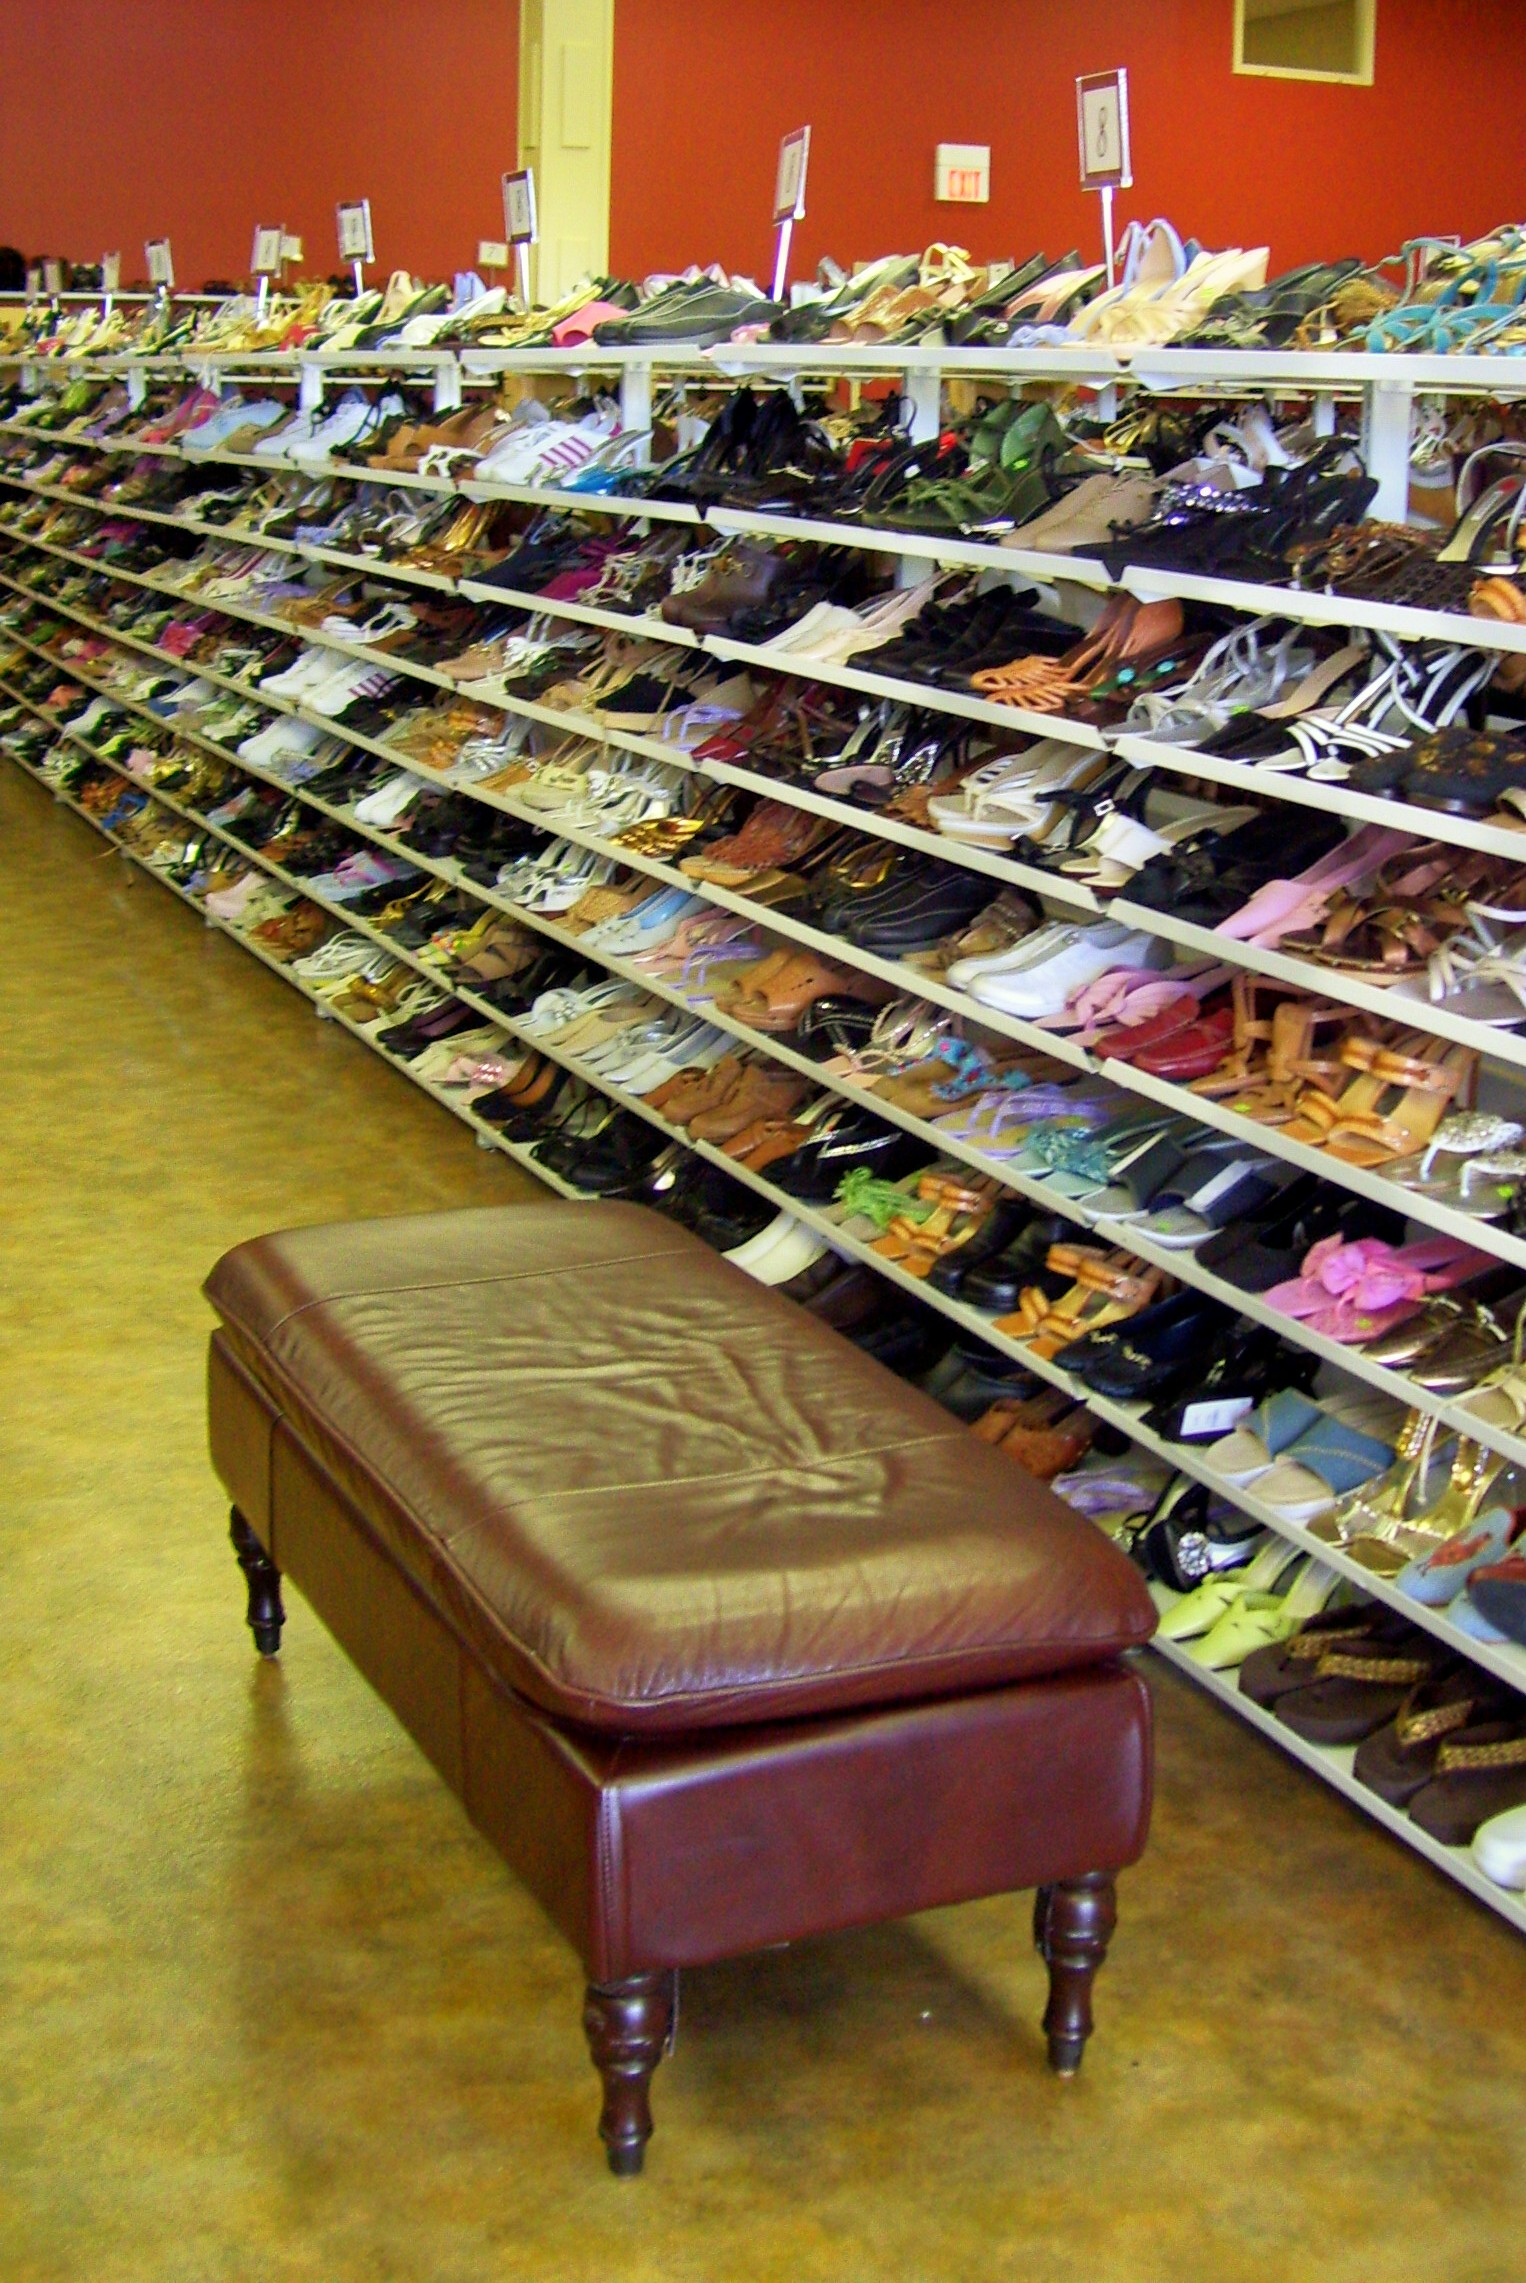 discount designer shoes in brentwood tn times guide